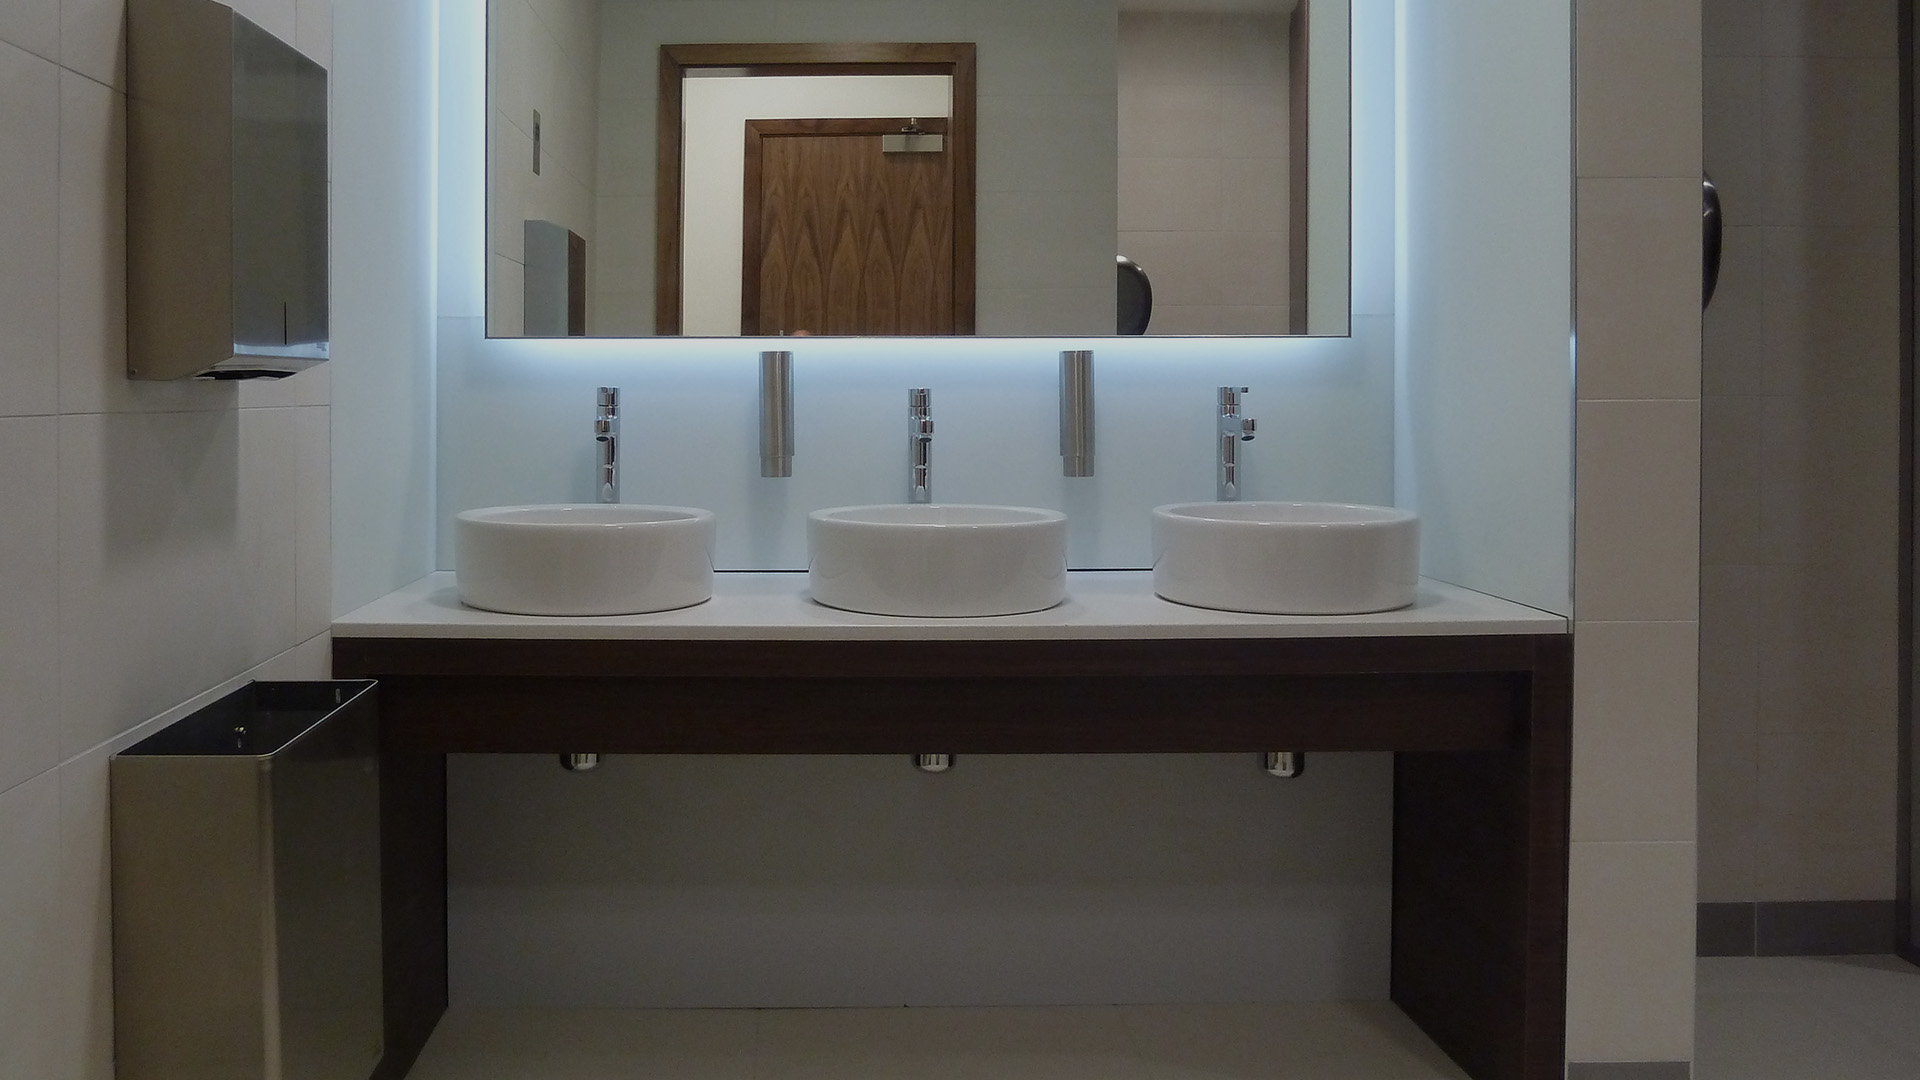 Stevens Washrooms - Commercial Washrooms Cubicles Urinals Installation Refurbishment - Nationwide and London